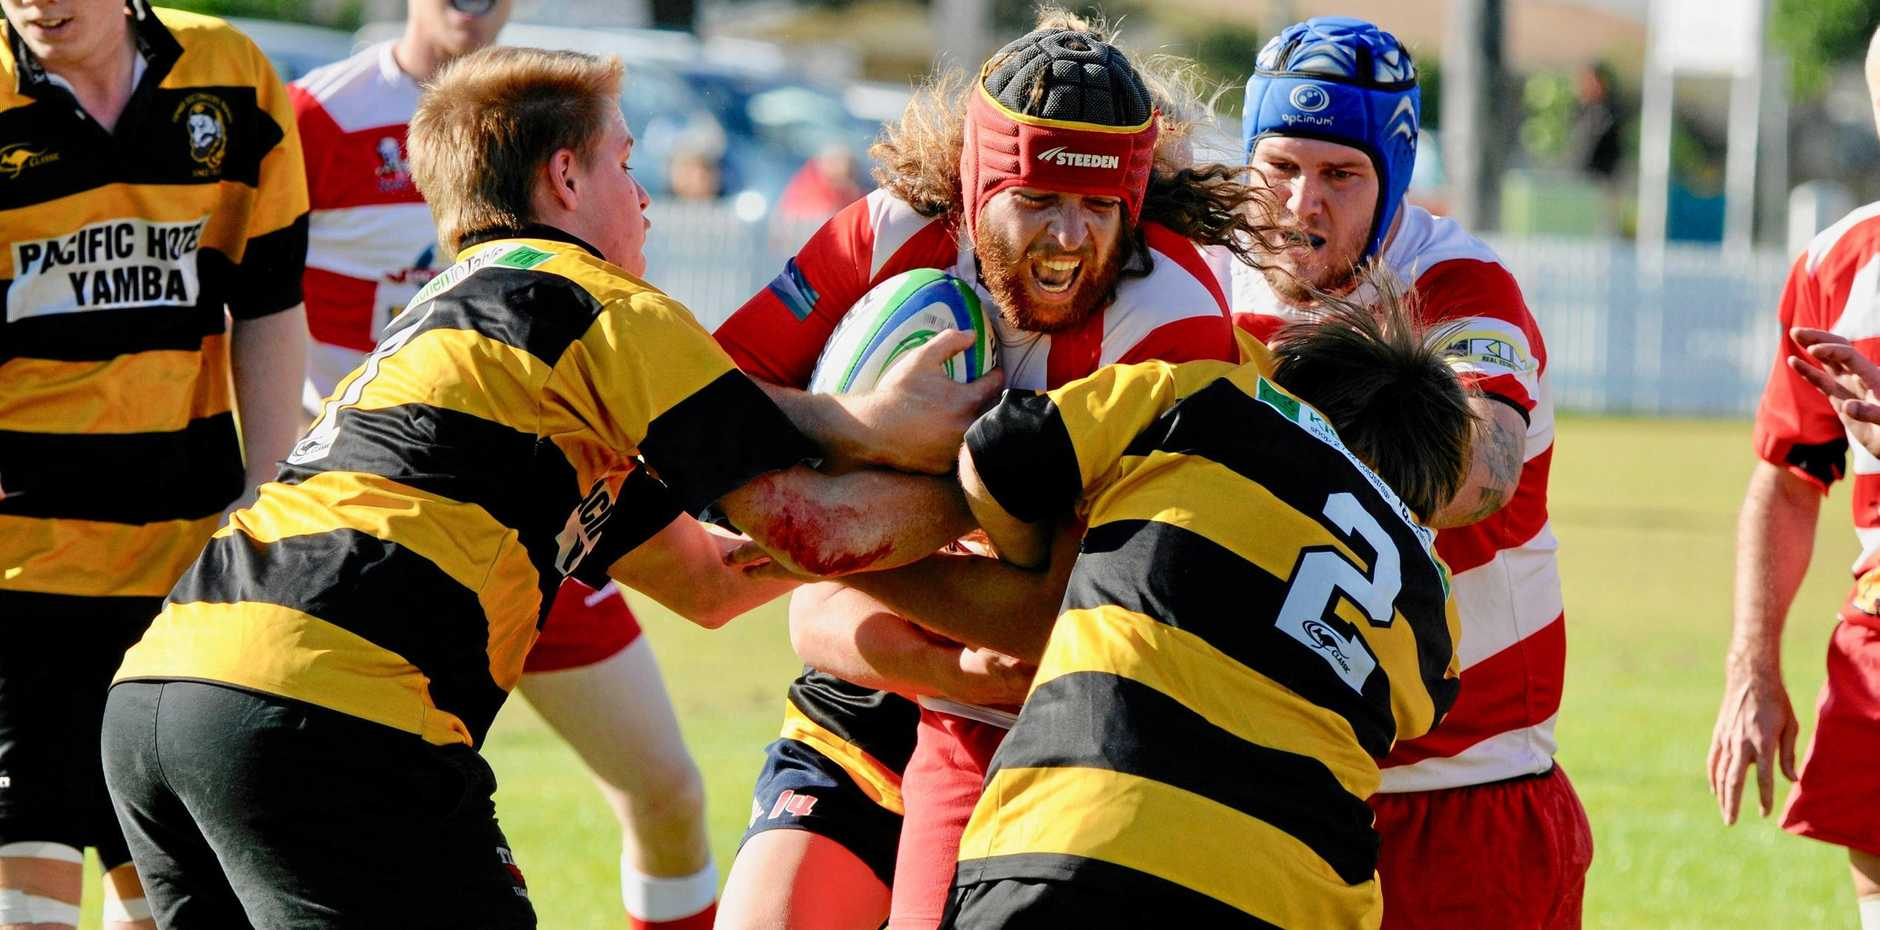 BACK ON THE CARDS: A return to the Far North Coast by the Grafton Redmen could see two old foes clash in the President's Cup next season.